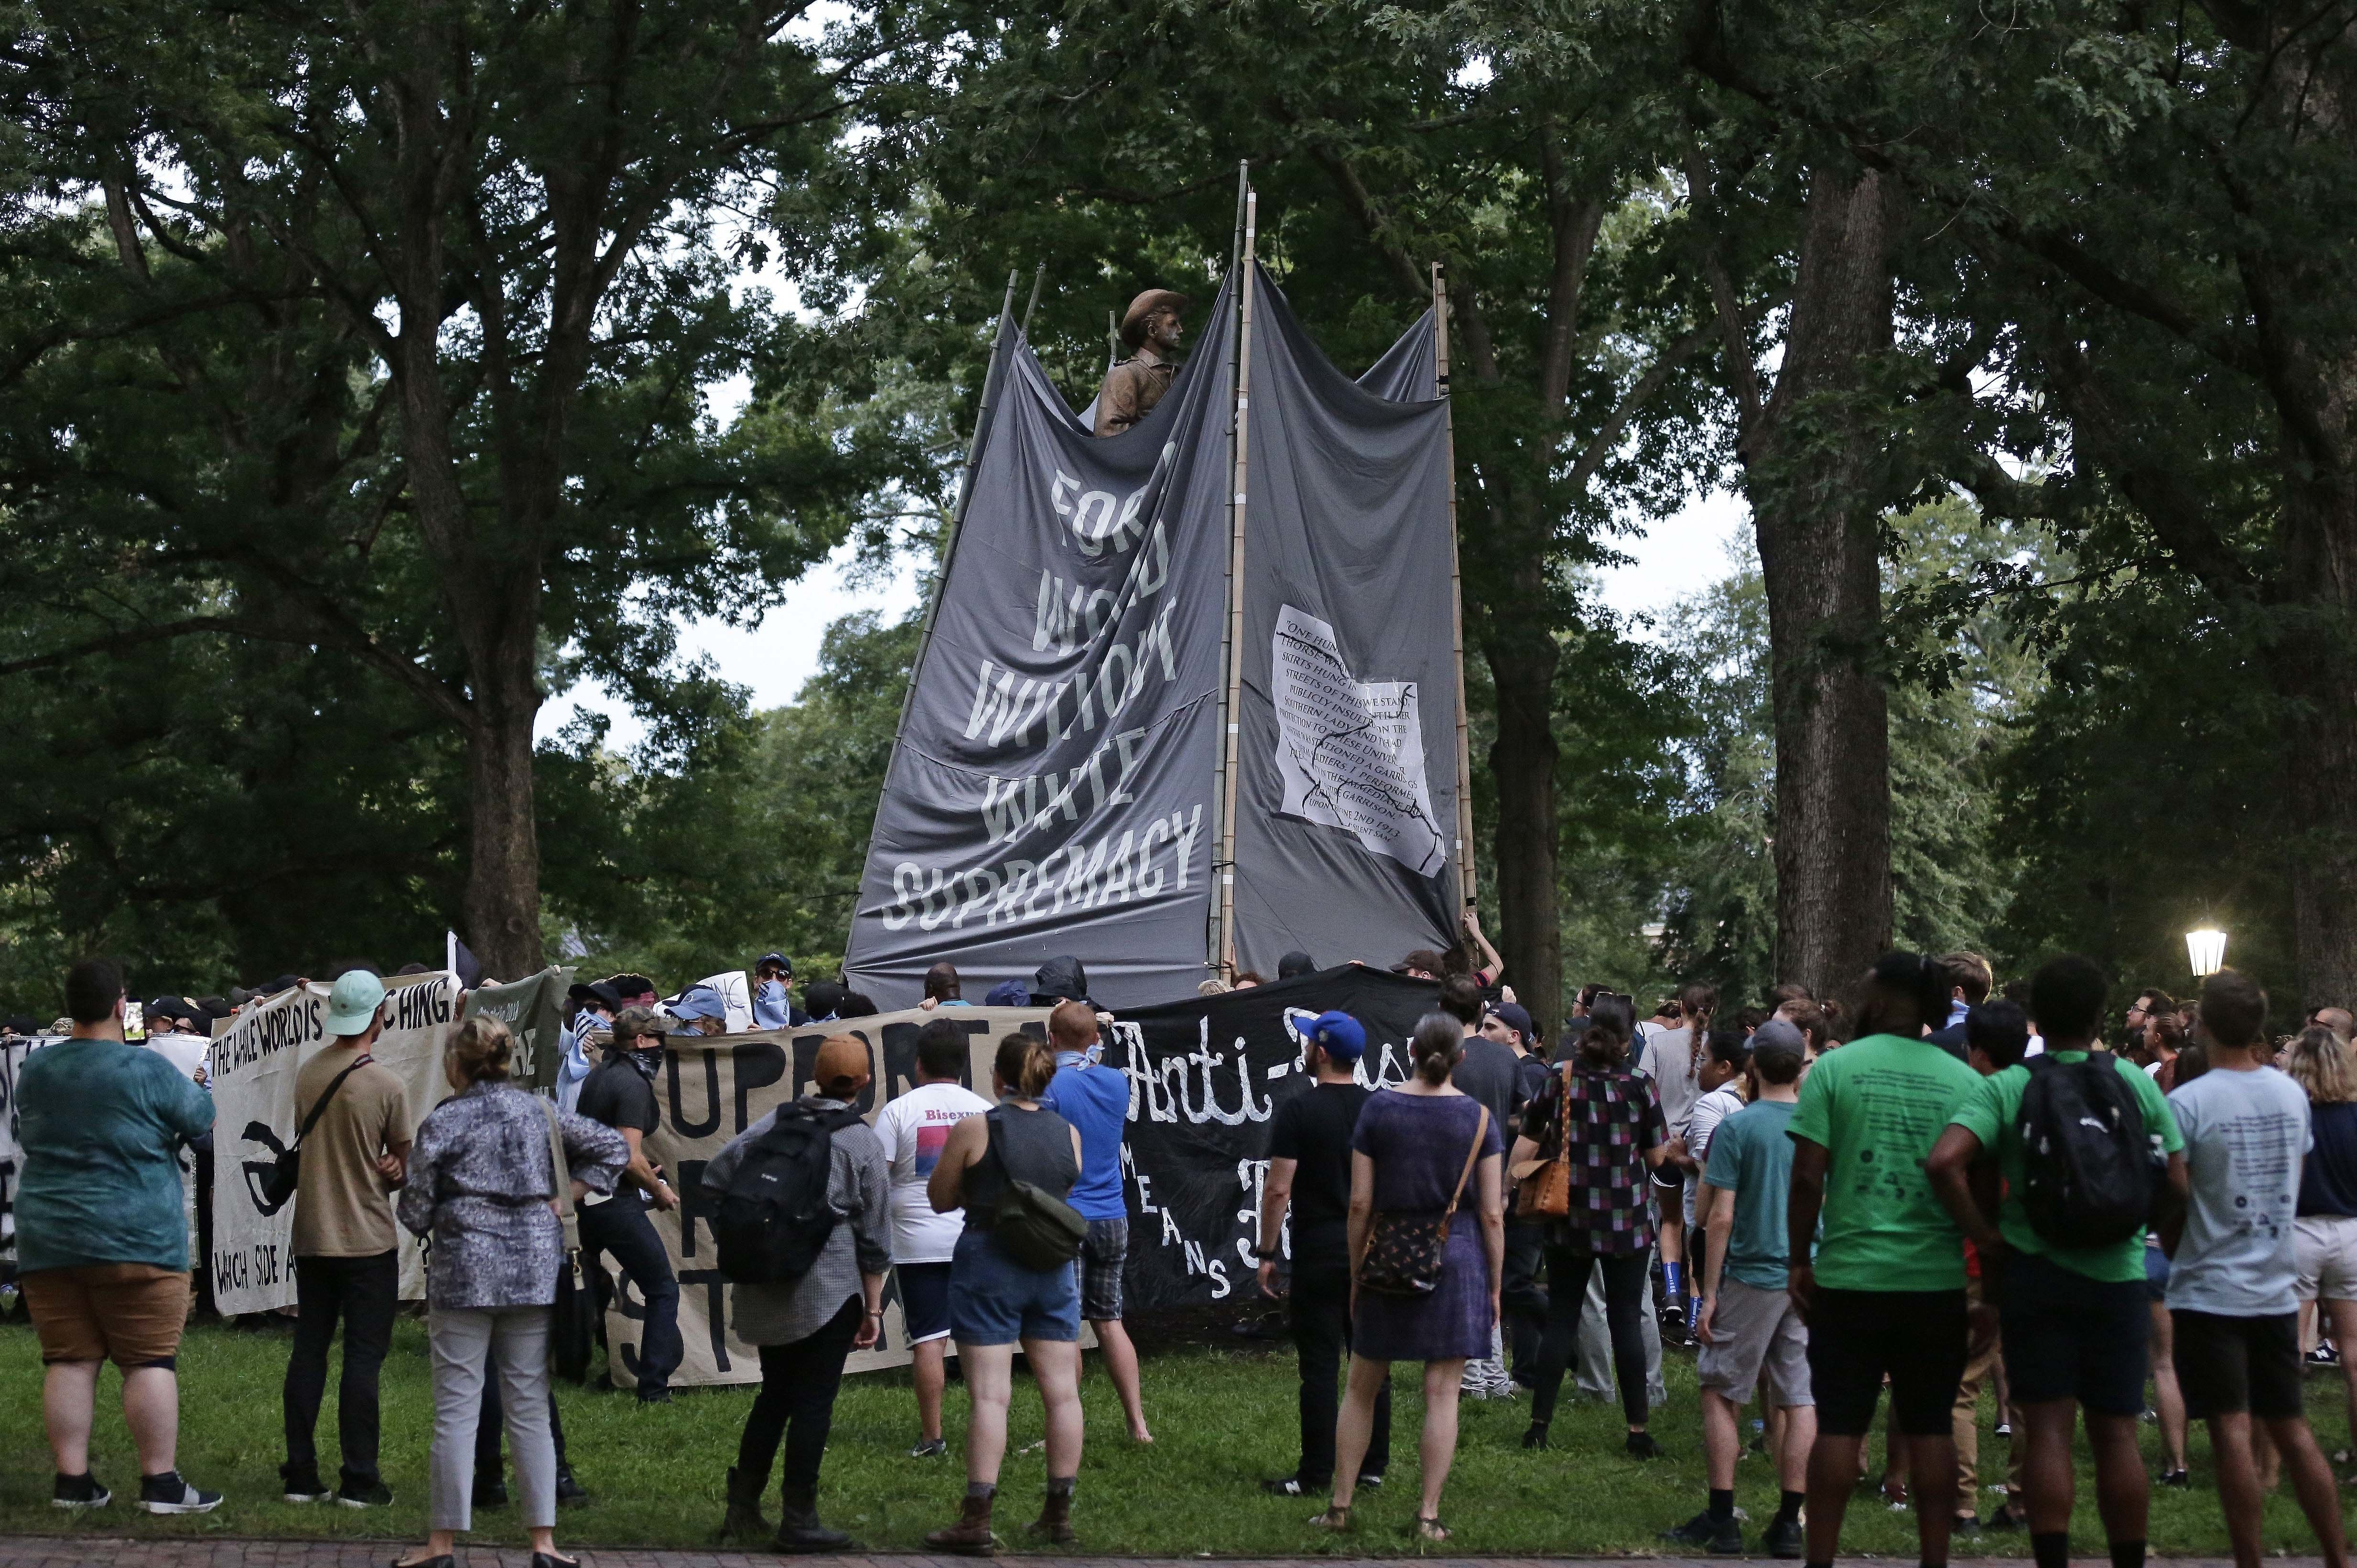 FILE - In this Monday, Aug. 20, 2018 file photo, banners are used to cover the statue known as Silent Sam as people gather during a rally to remove the confederate statue from campus at the University of North Carolina in Chapel Hill, N.C. Police are filing charges against three people who they say helped bring down the Confederate statue at North Carolina's flagship university. University of North Carolina Police issued a statement Friday, Aug. 24, 2018, that the department has filed warrants for three people on charges of misdemeanor rioting and defacing a public monument. (AP Photo/Gerry Broome, File)